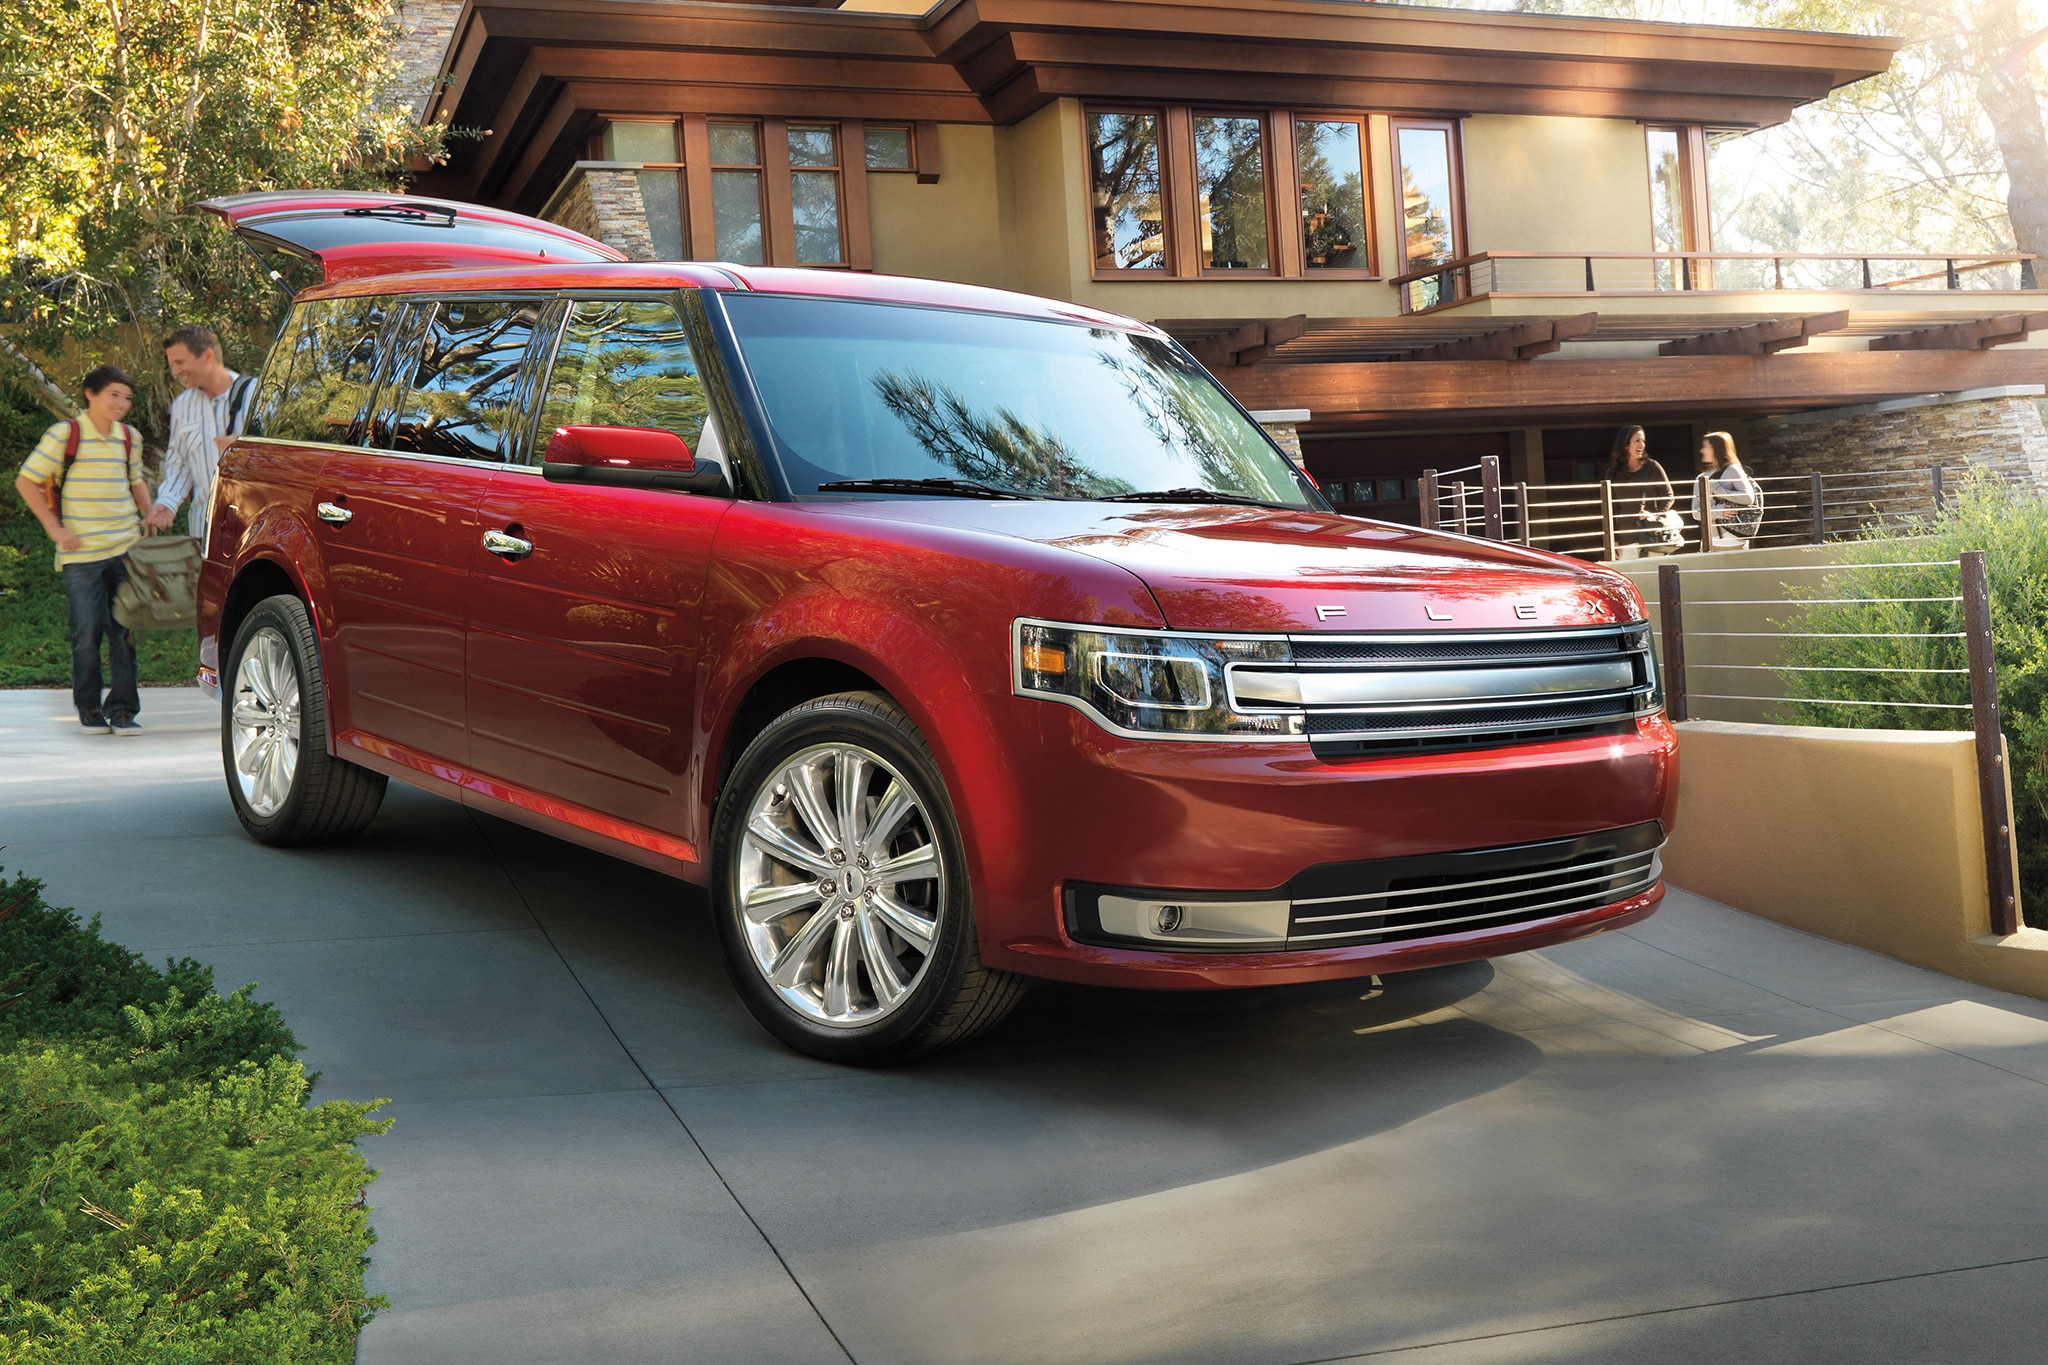 2014 Ford Flex Three Quarters View1